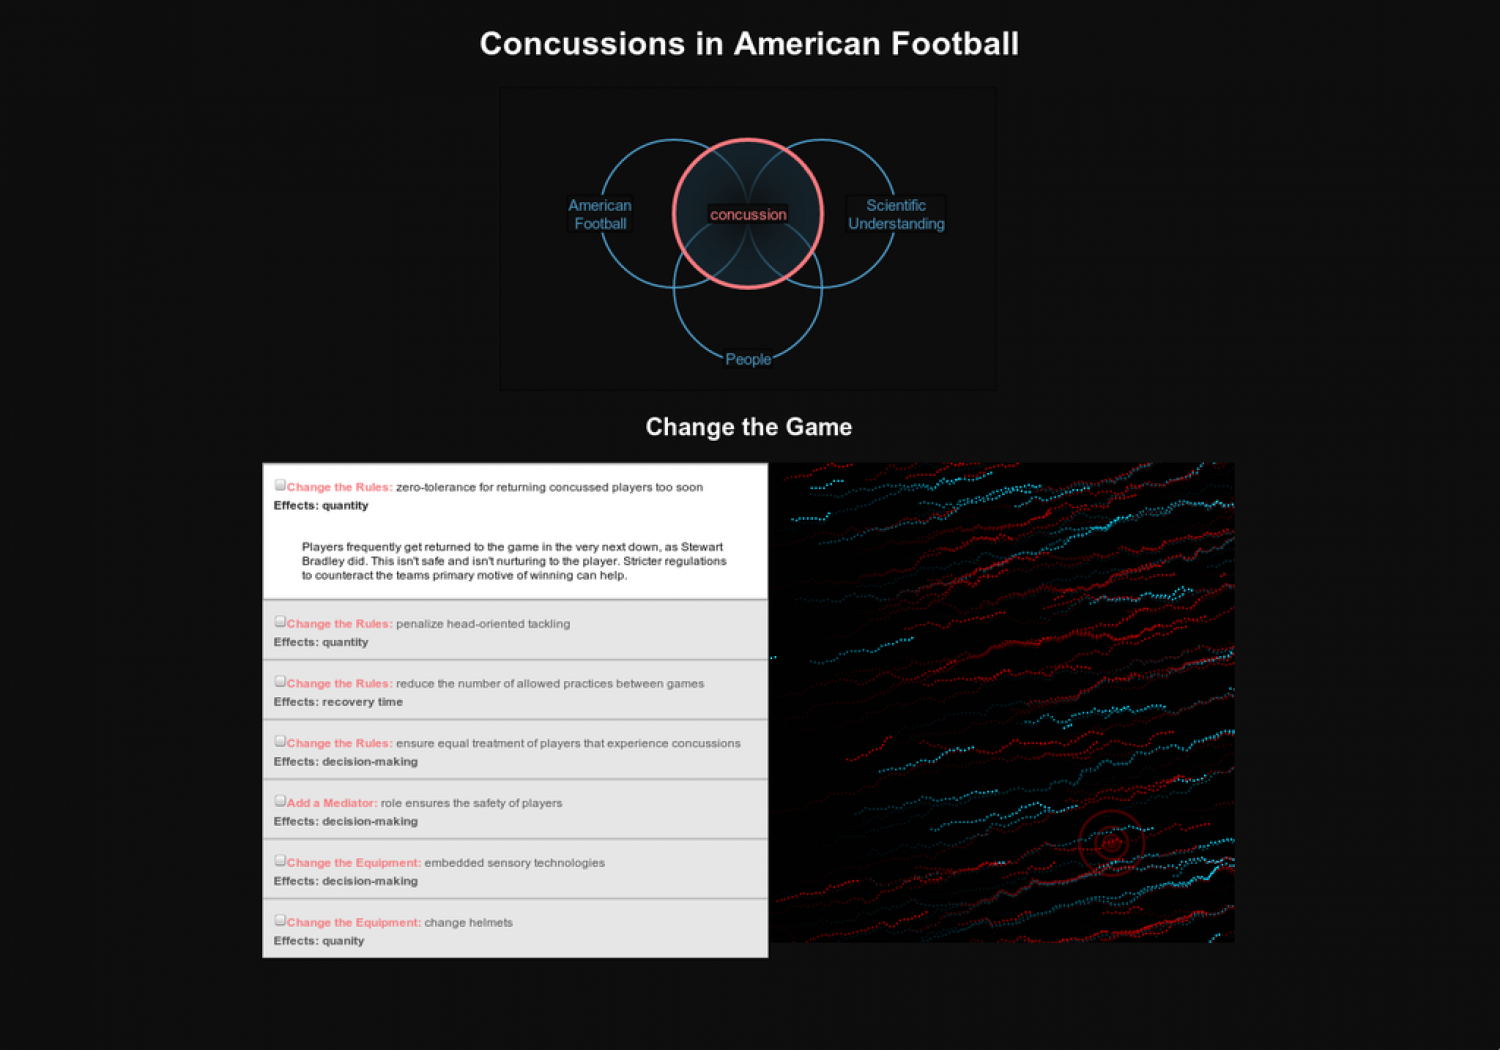 Concussions in American Football Infographic